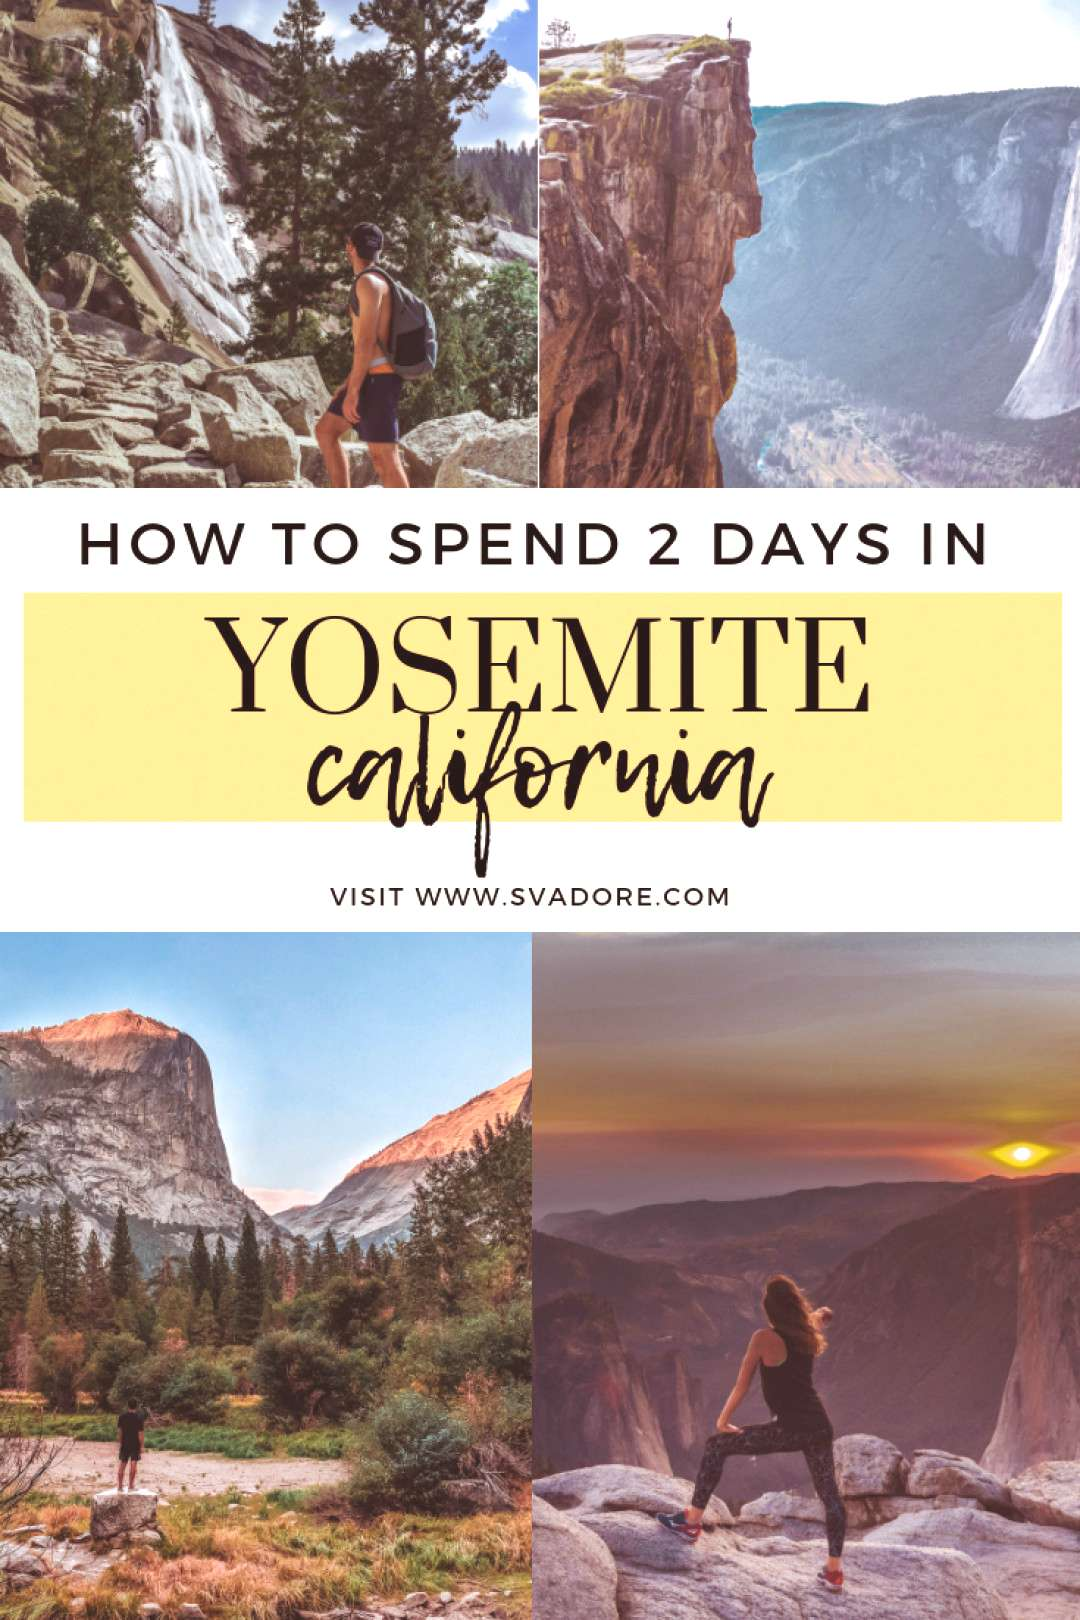 The Best Way to See Yosemite in 2 Days. How much can you see of Yosemite in 2 days? You'd be surp